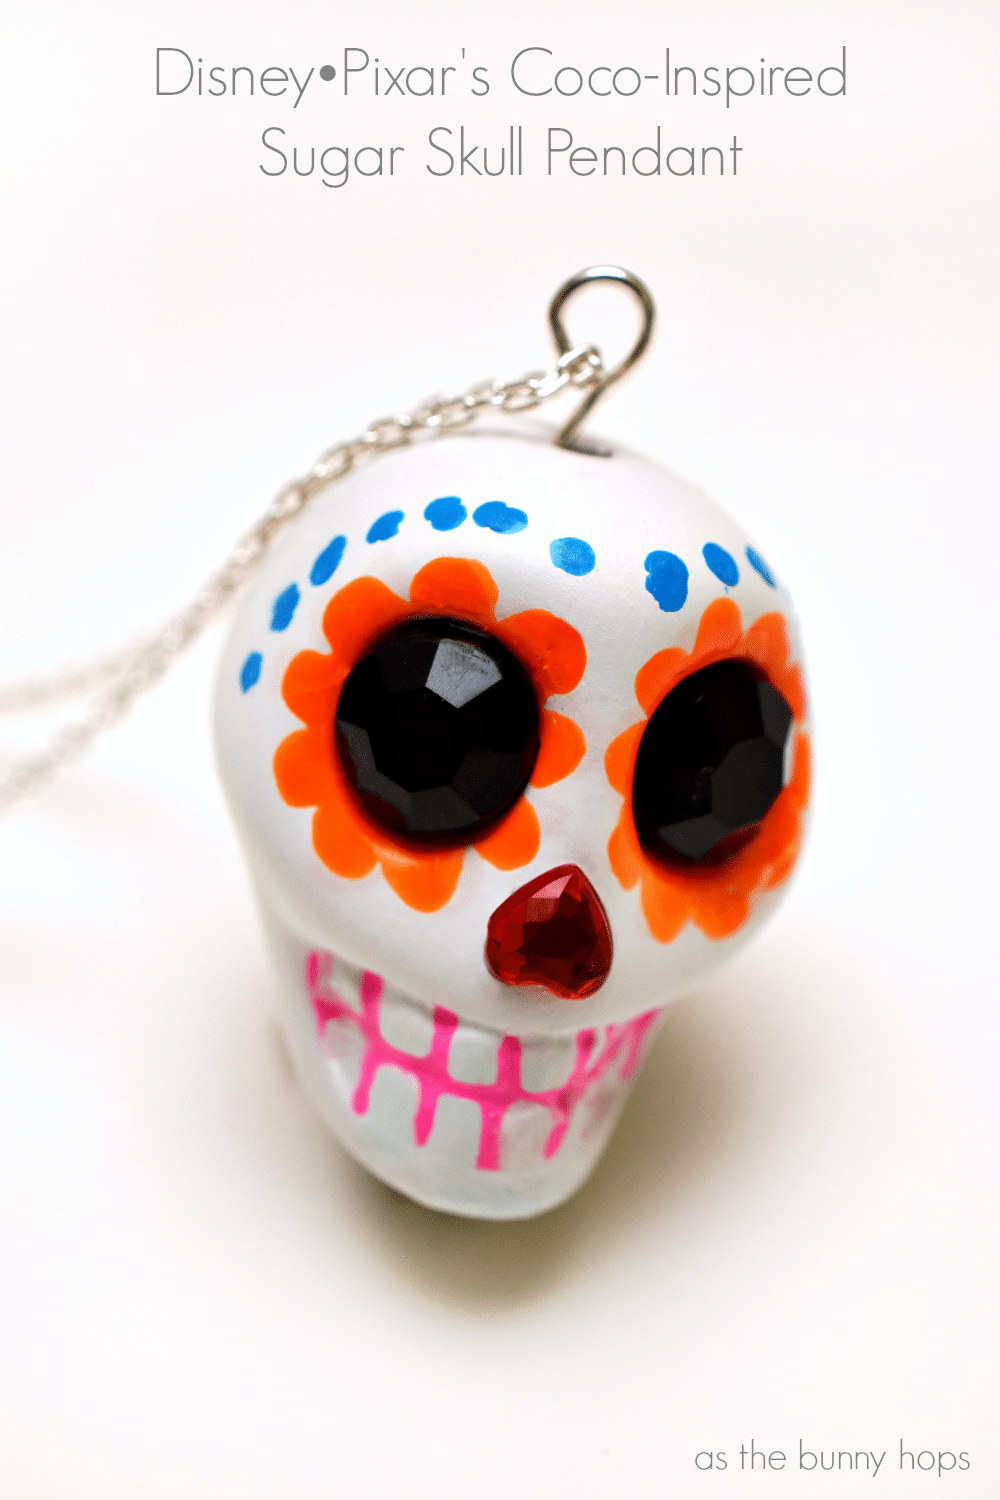 sugar umph skull pendant kitschatron shop necklace jubly